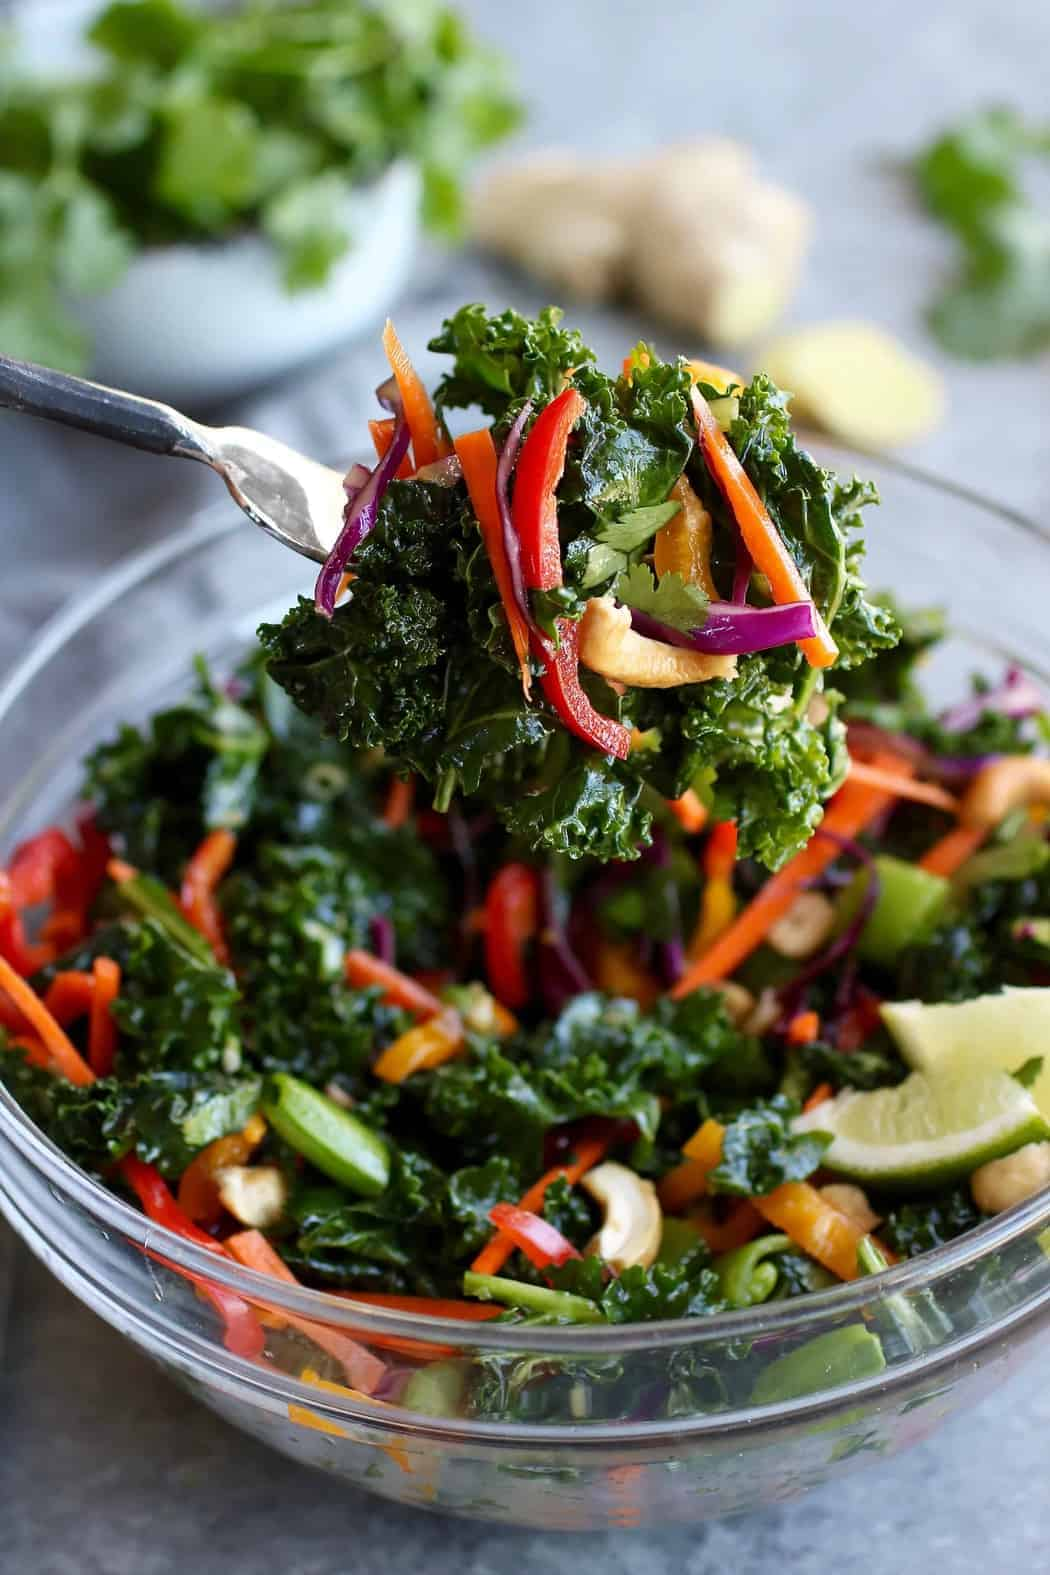 Thai Kale Salad with Cashews on a fork